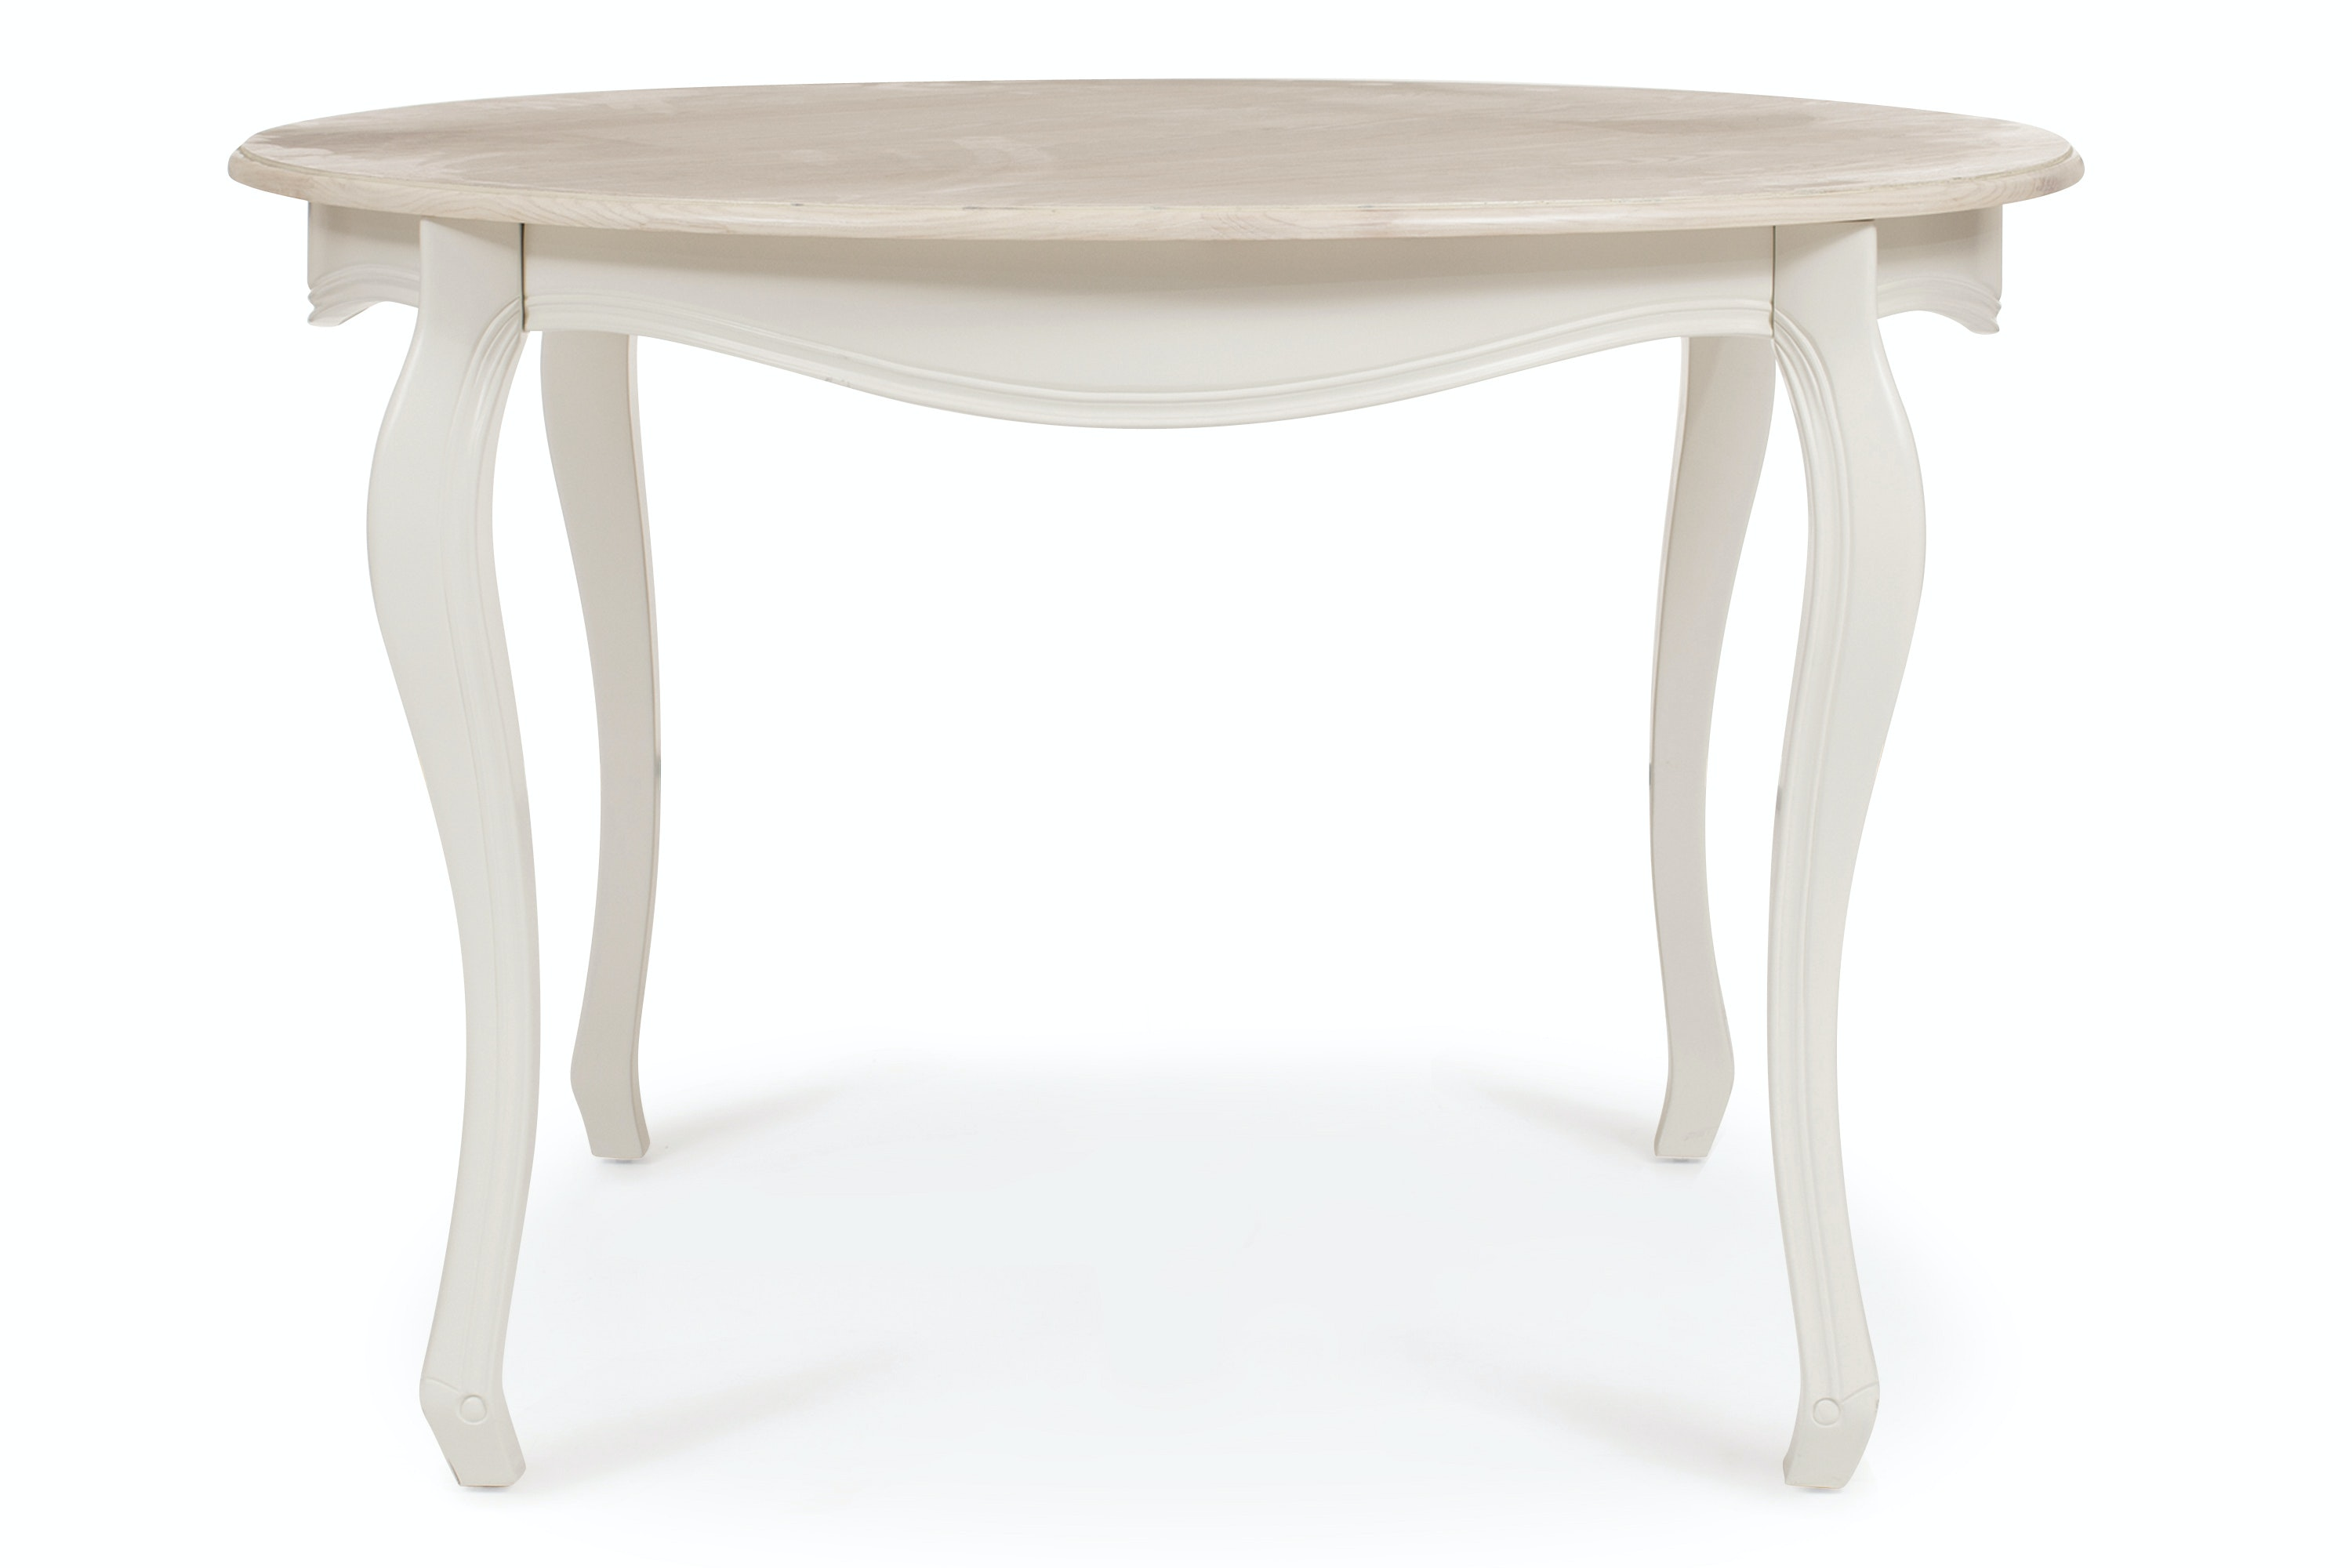 Bouvard Dining Table | Round